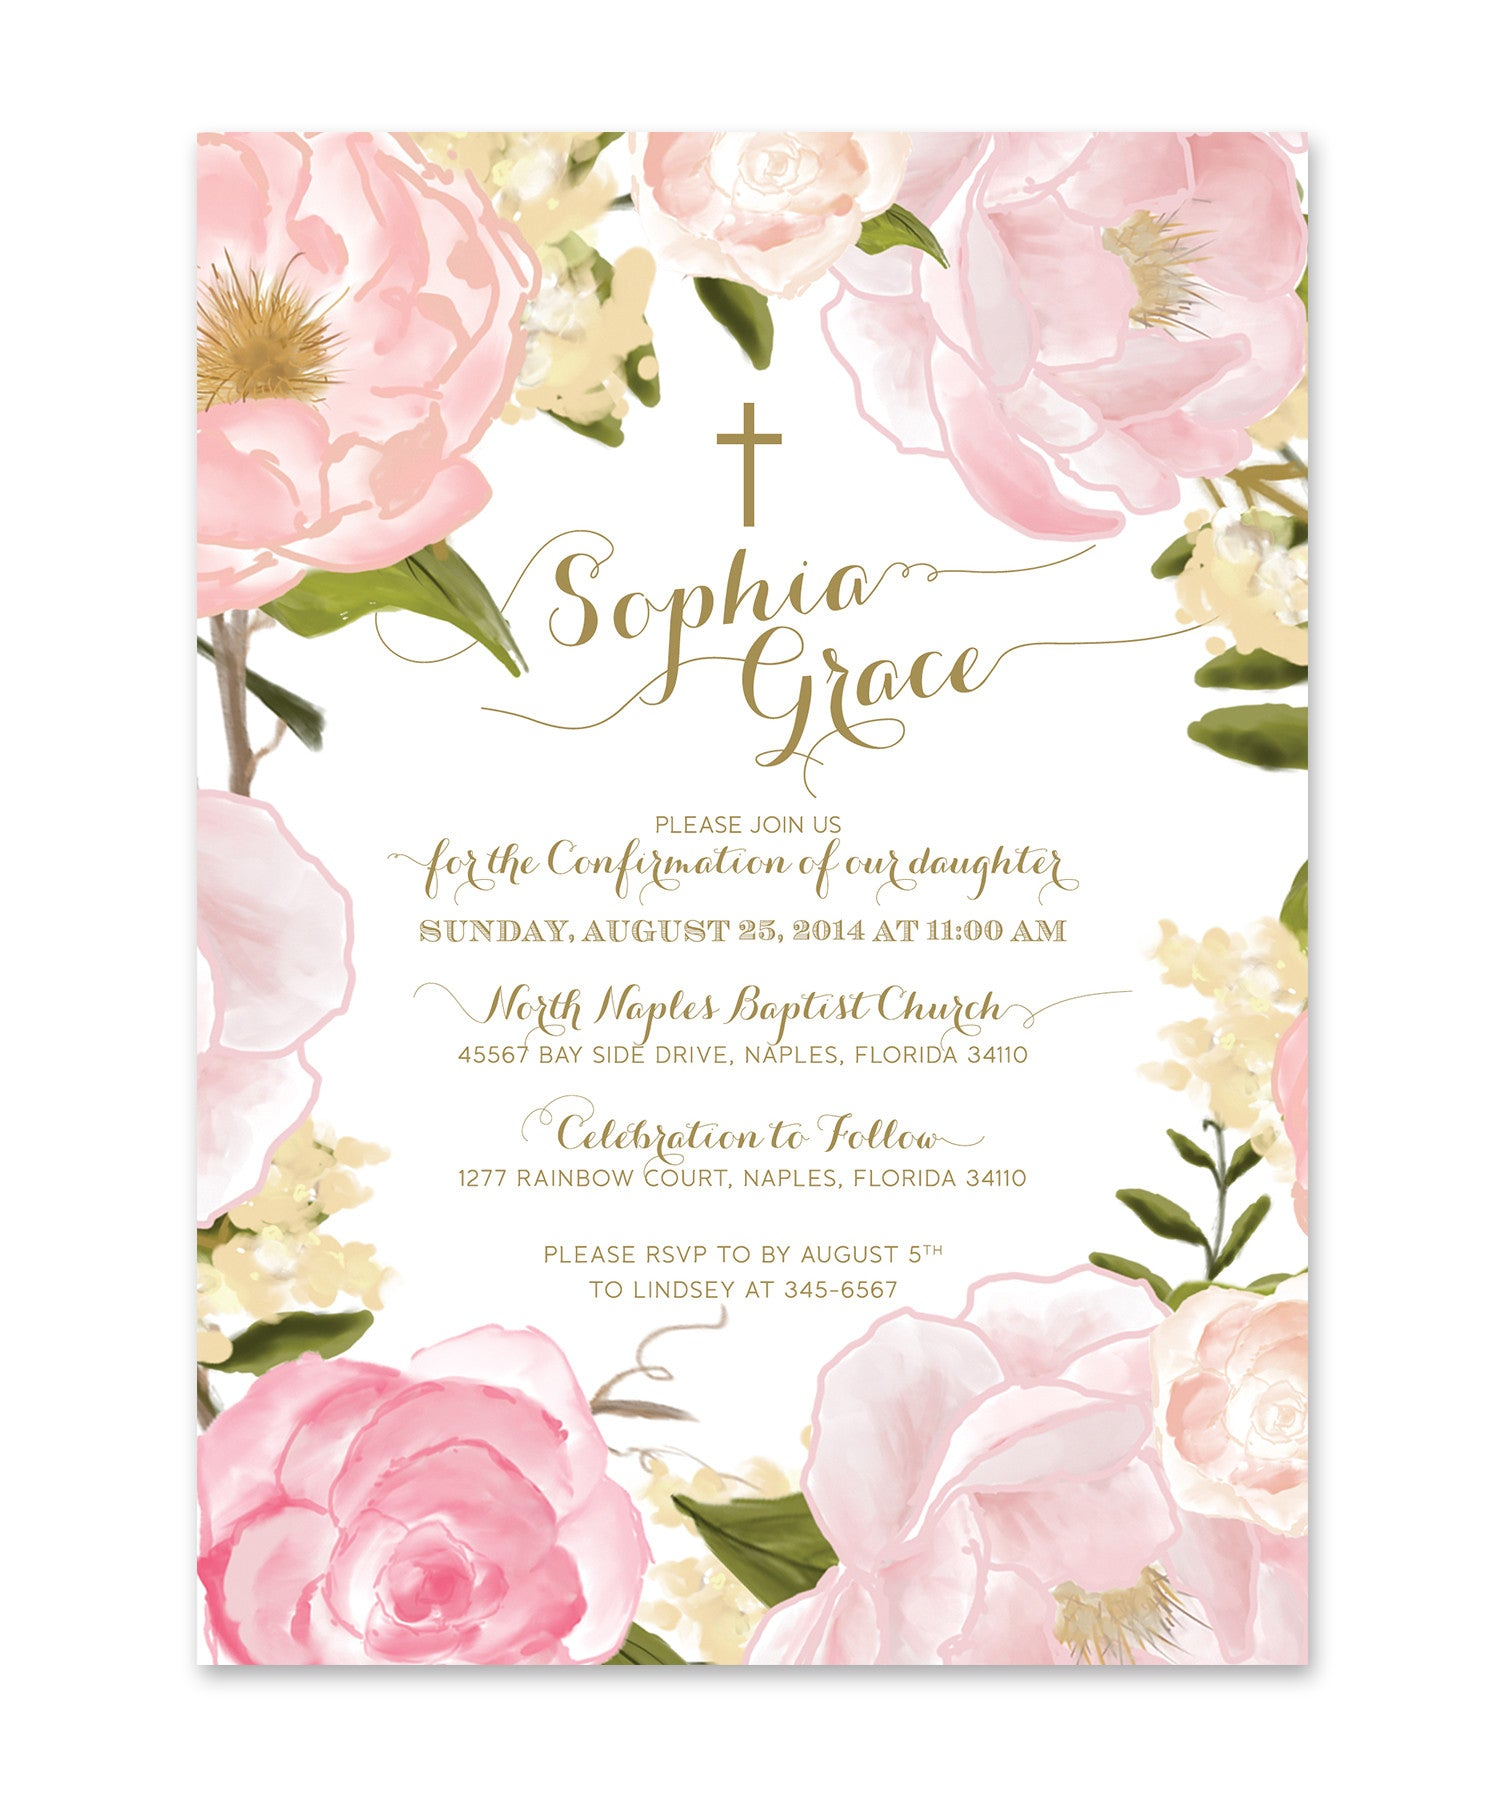 Grace Confirmation Invitation for Girls Pink Roses Peonies Gold